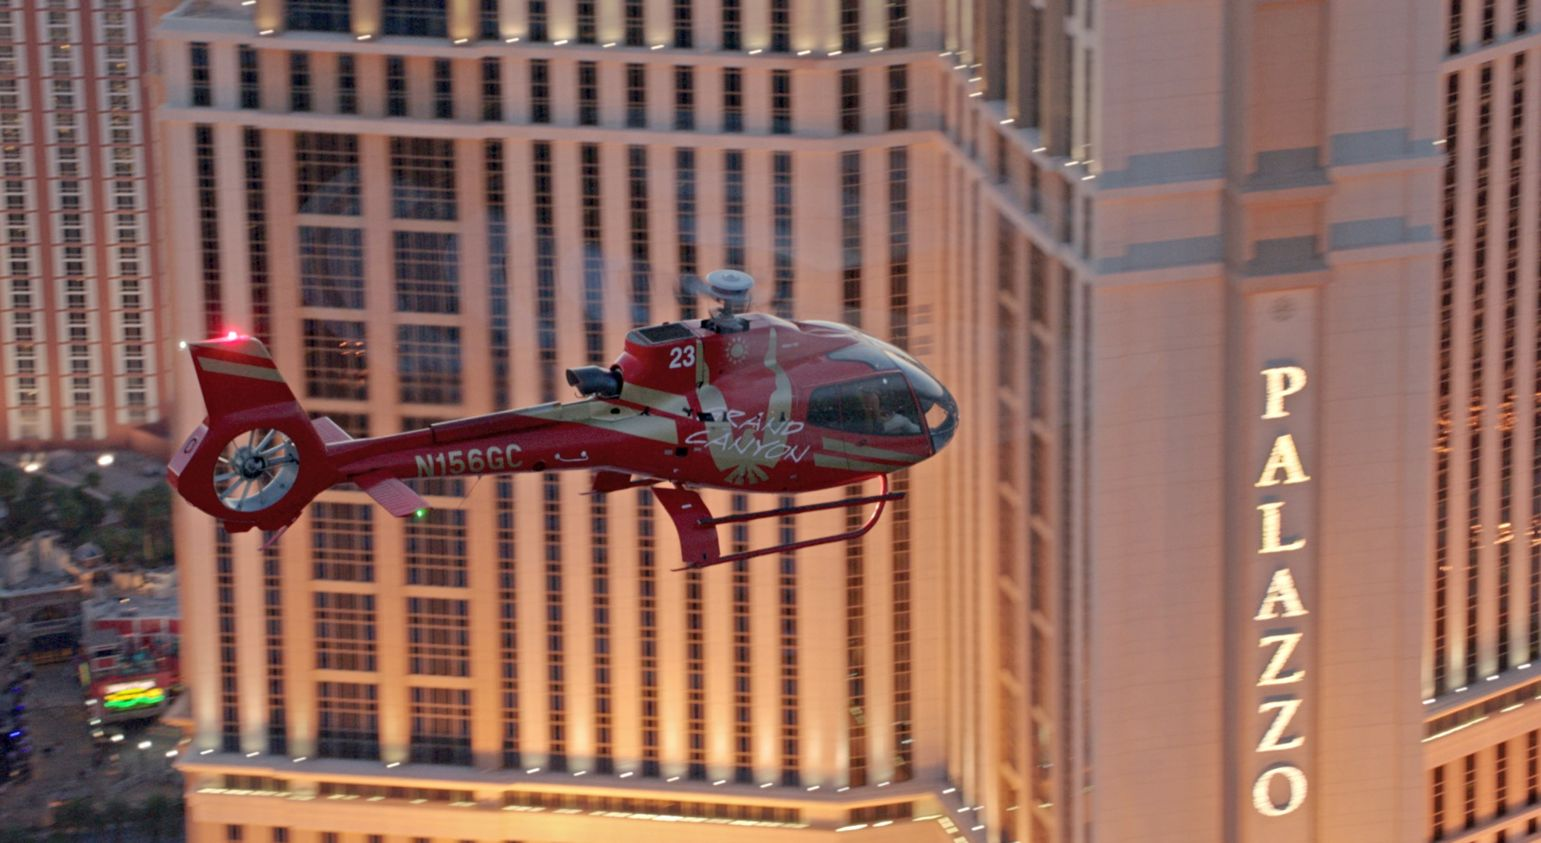 Helicopter flying past the Palazzo Hotel on Las Vegas Strip.